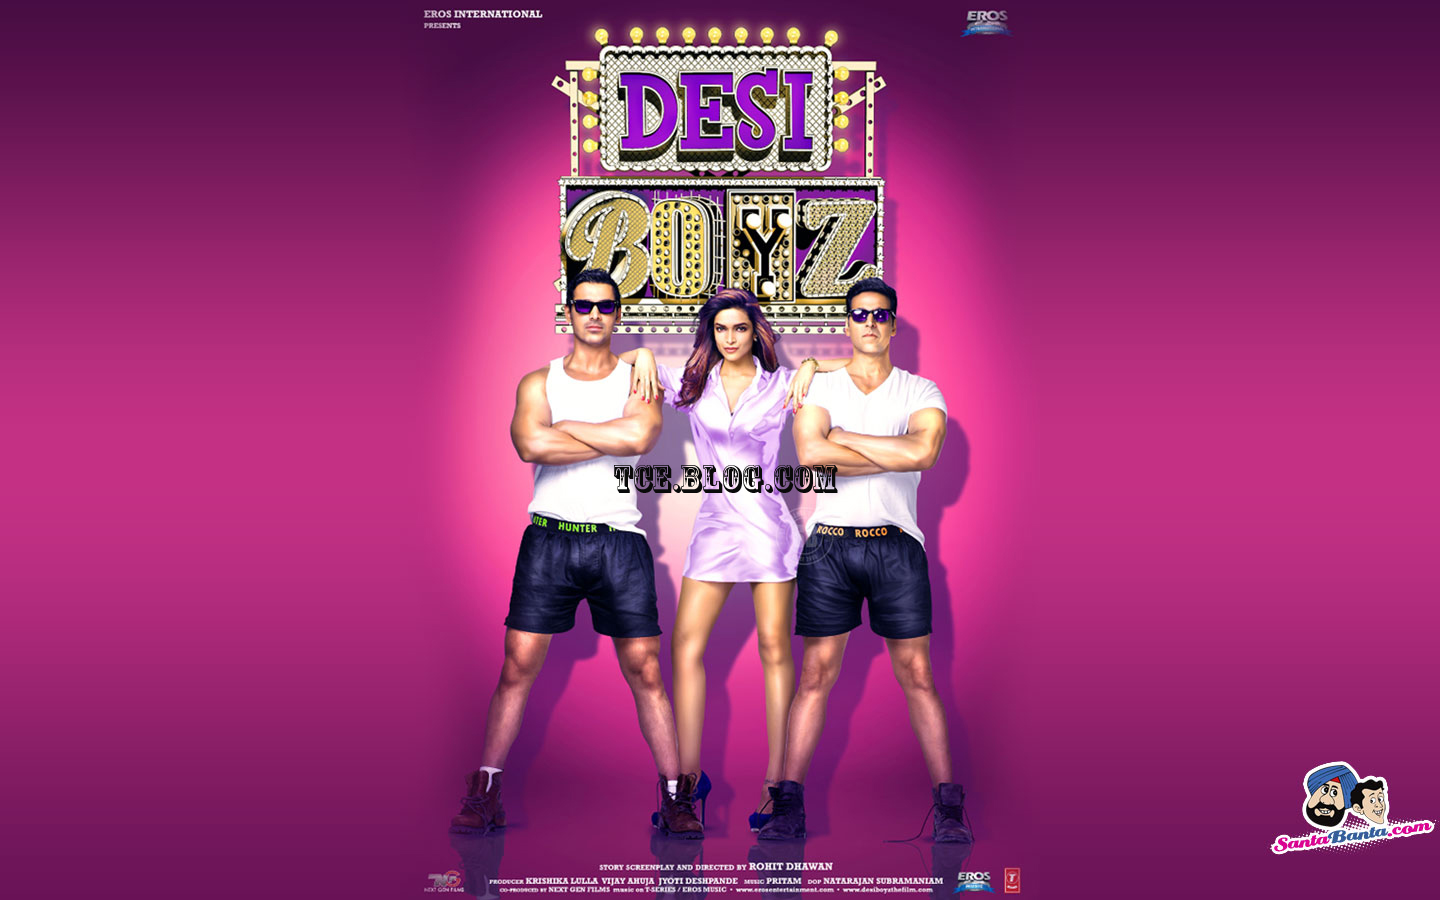 download wallpaper desi boyz - photo #23